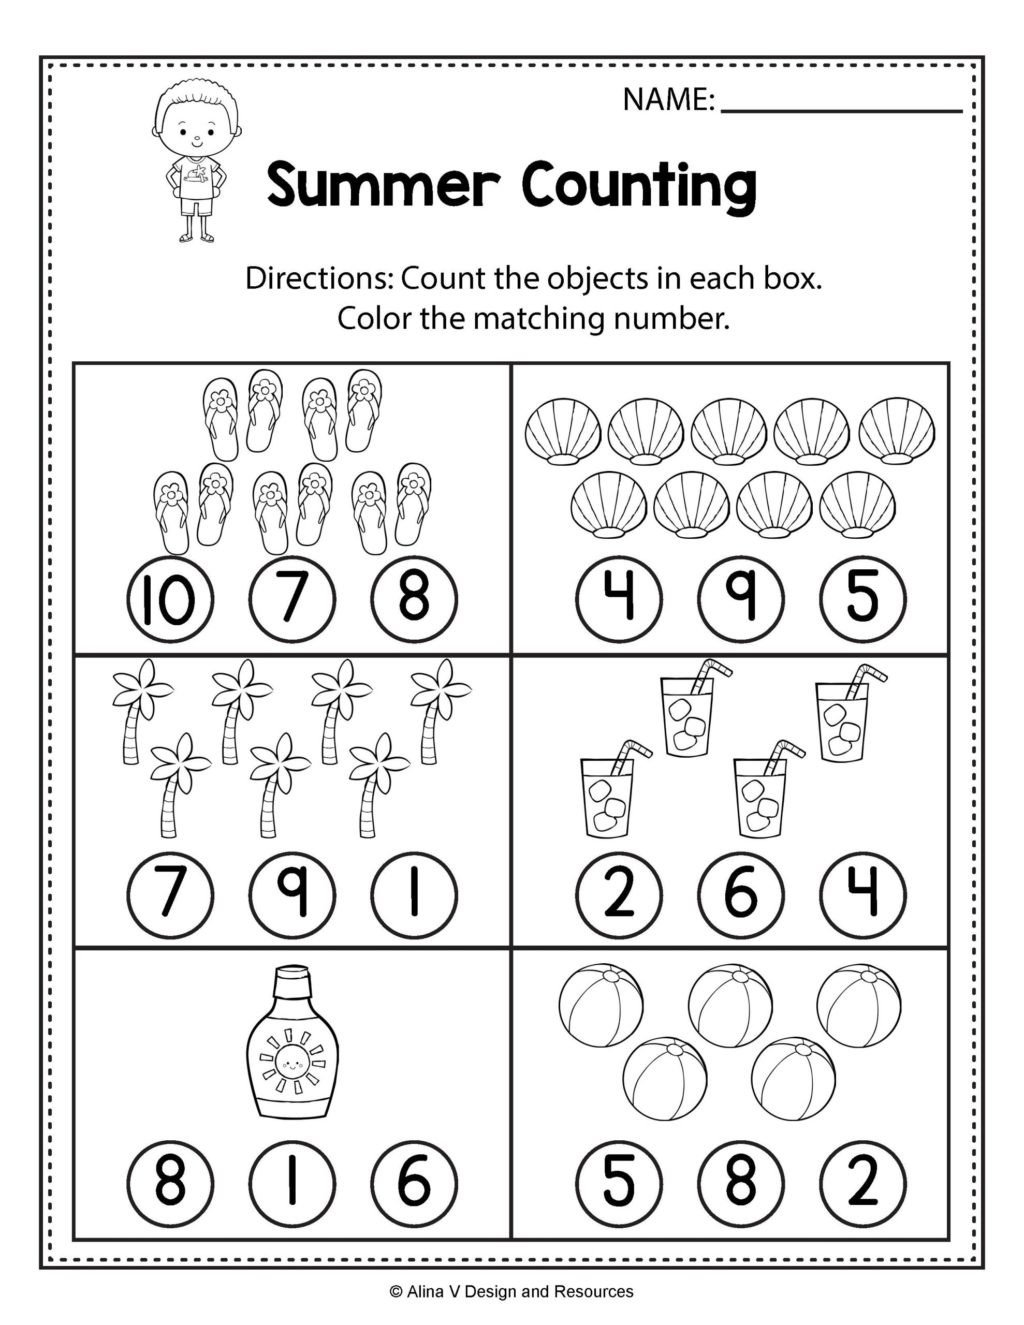 Skip Counting Worksheets 3rd Grade Worksheet Worksheet Ideas Counting Worksheets 3rd Grade